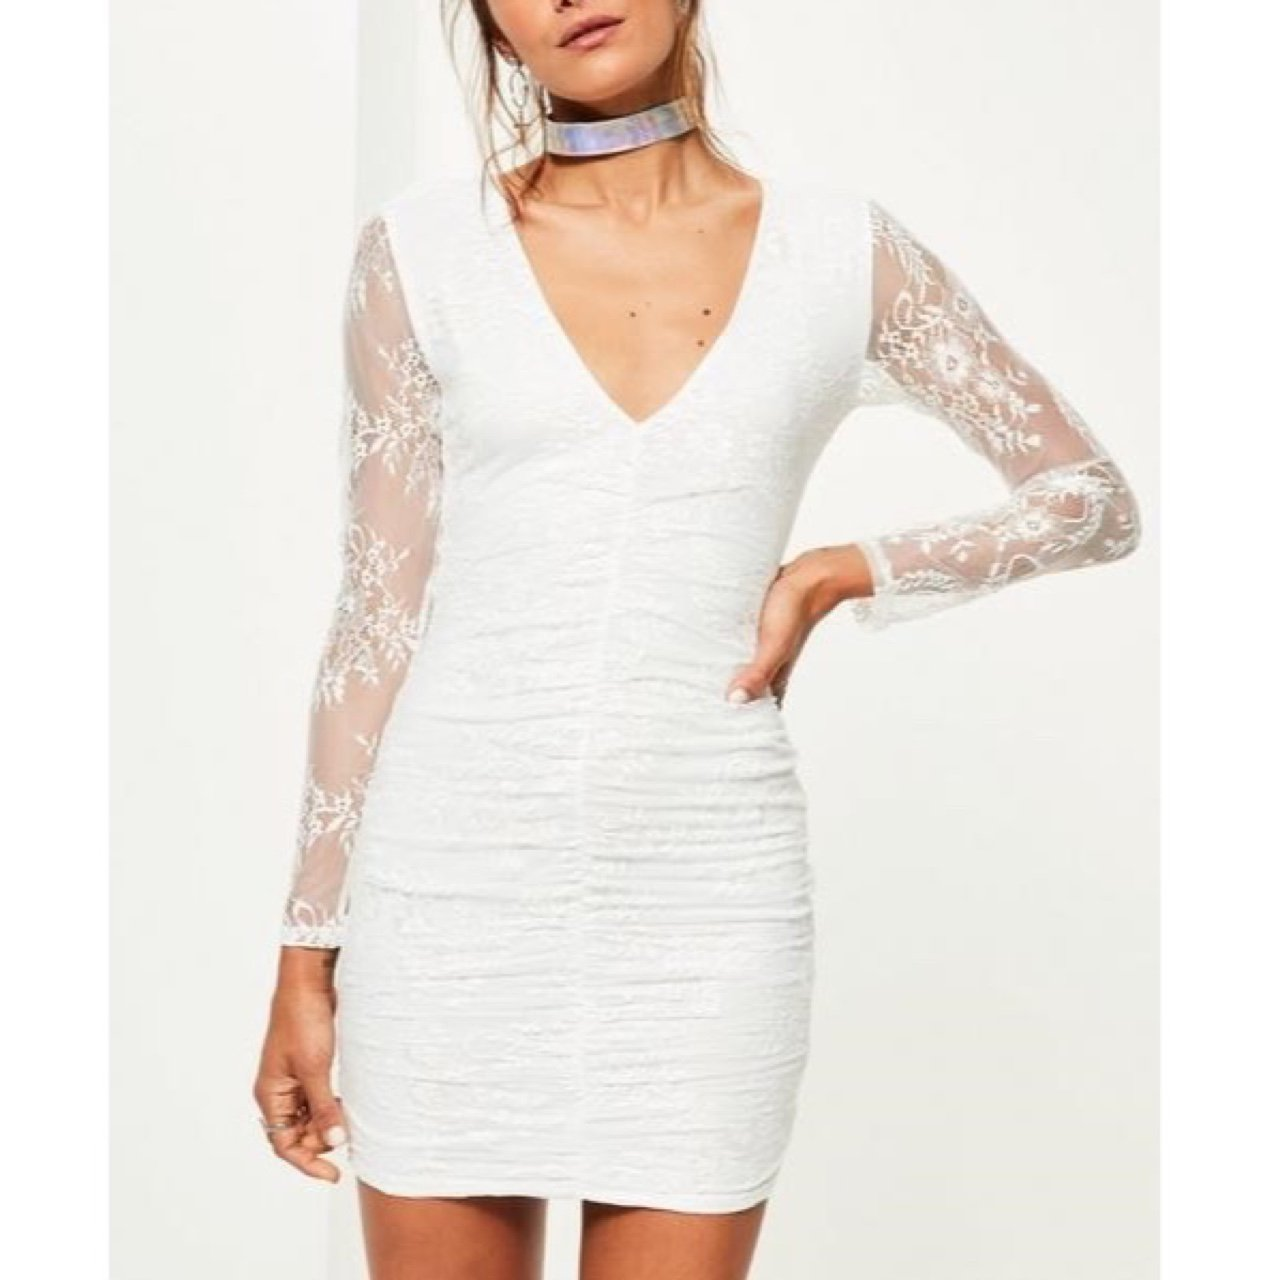 f861bd3b6d FREE DELIVERY Missguided white fine lace plunge ruche - Depop